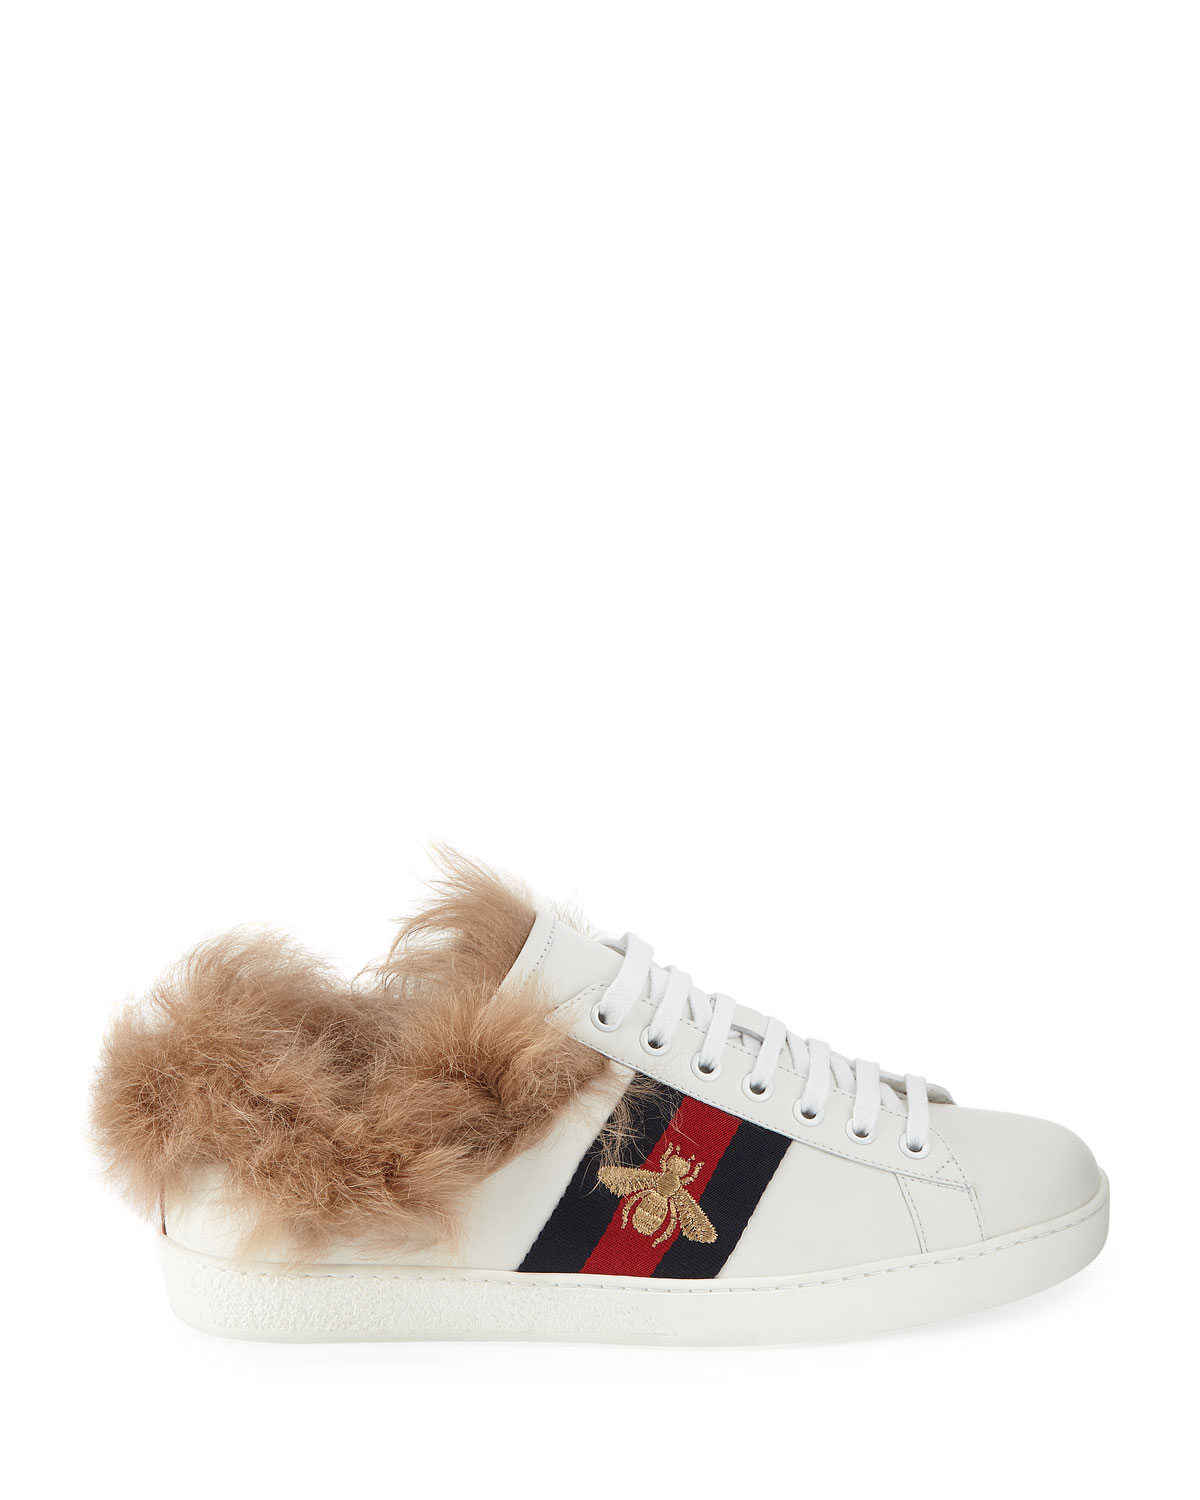 Gucci Ace Sneakers with Fur   Neiman Marcus